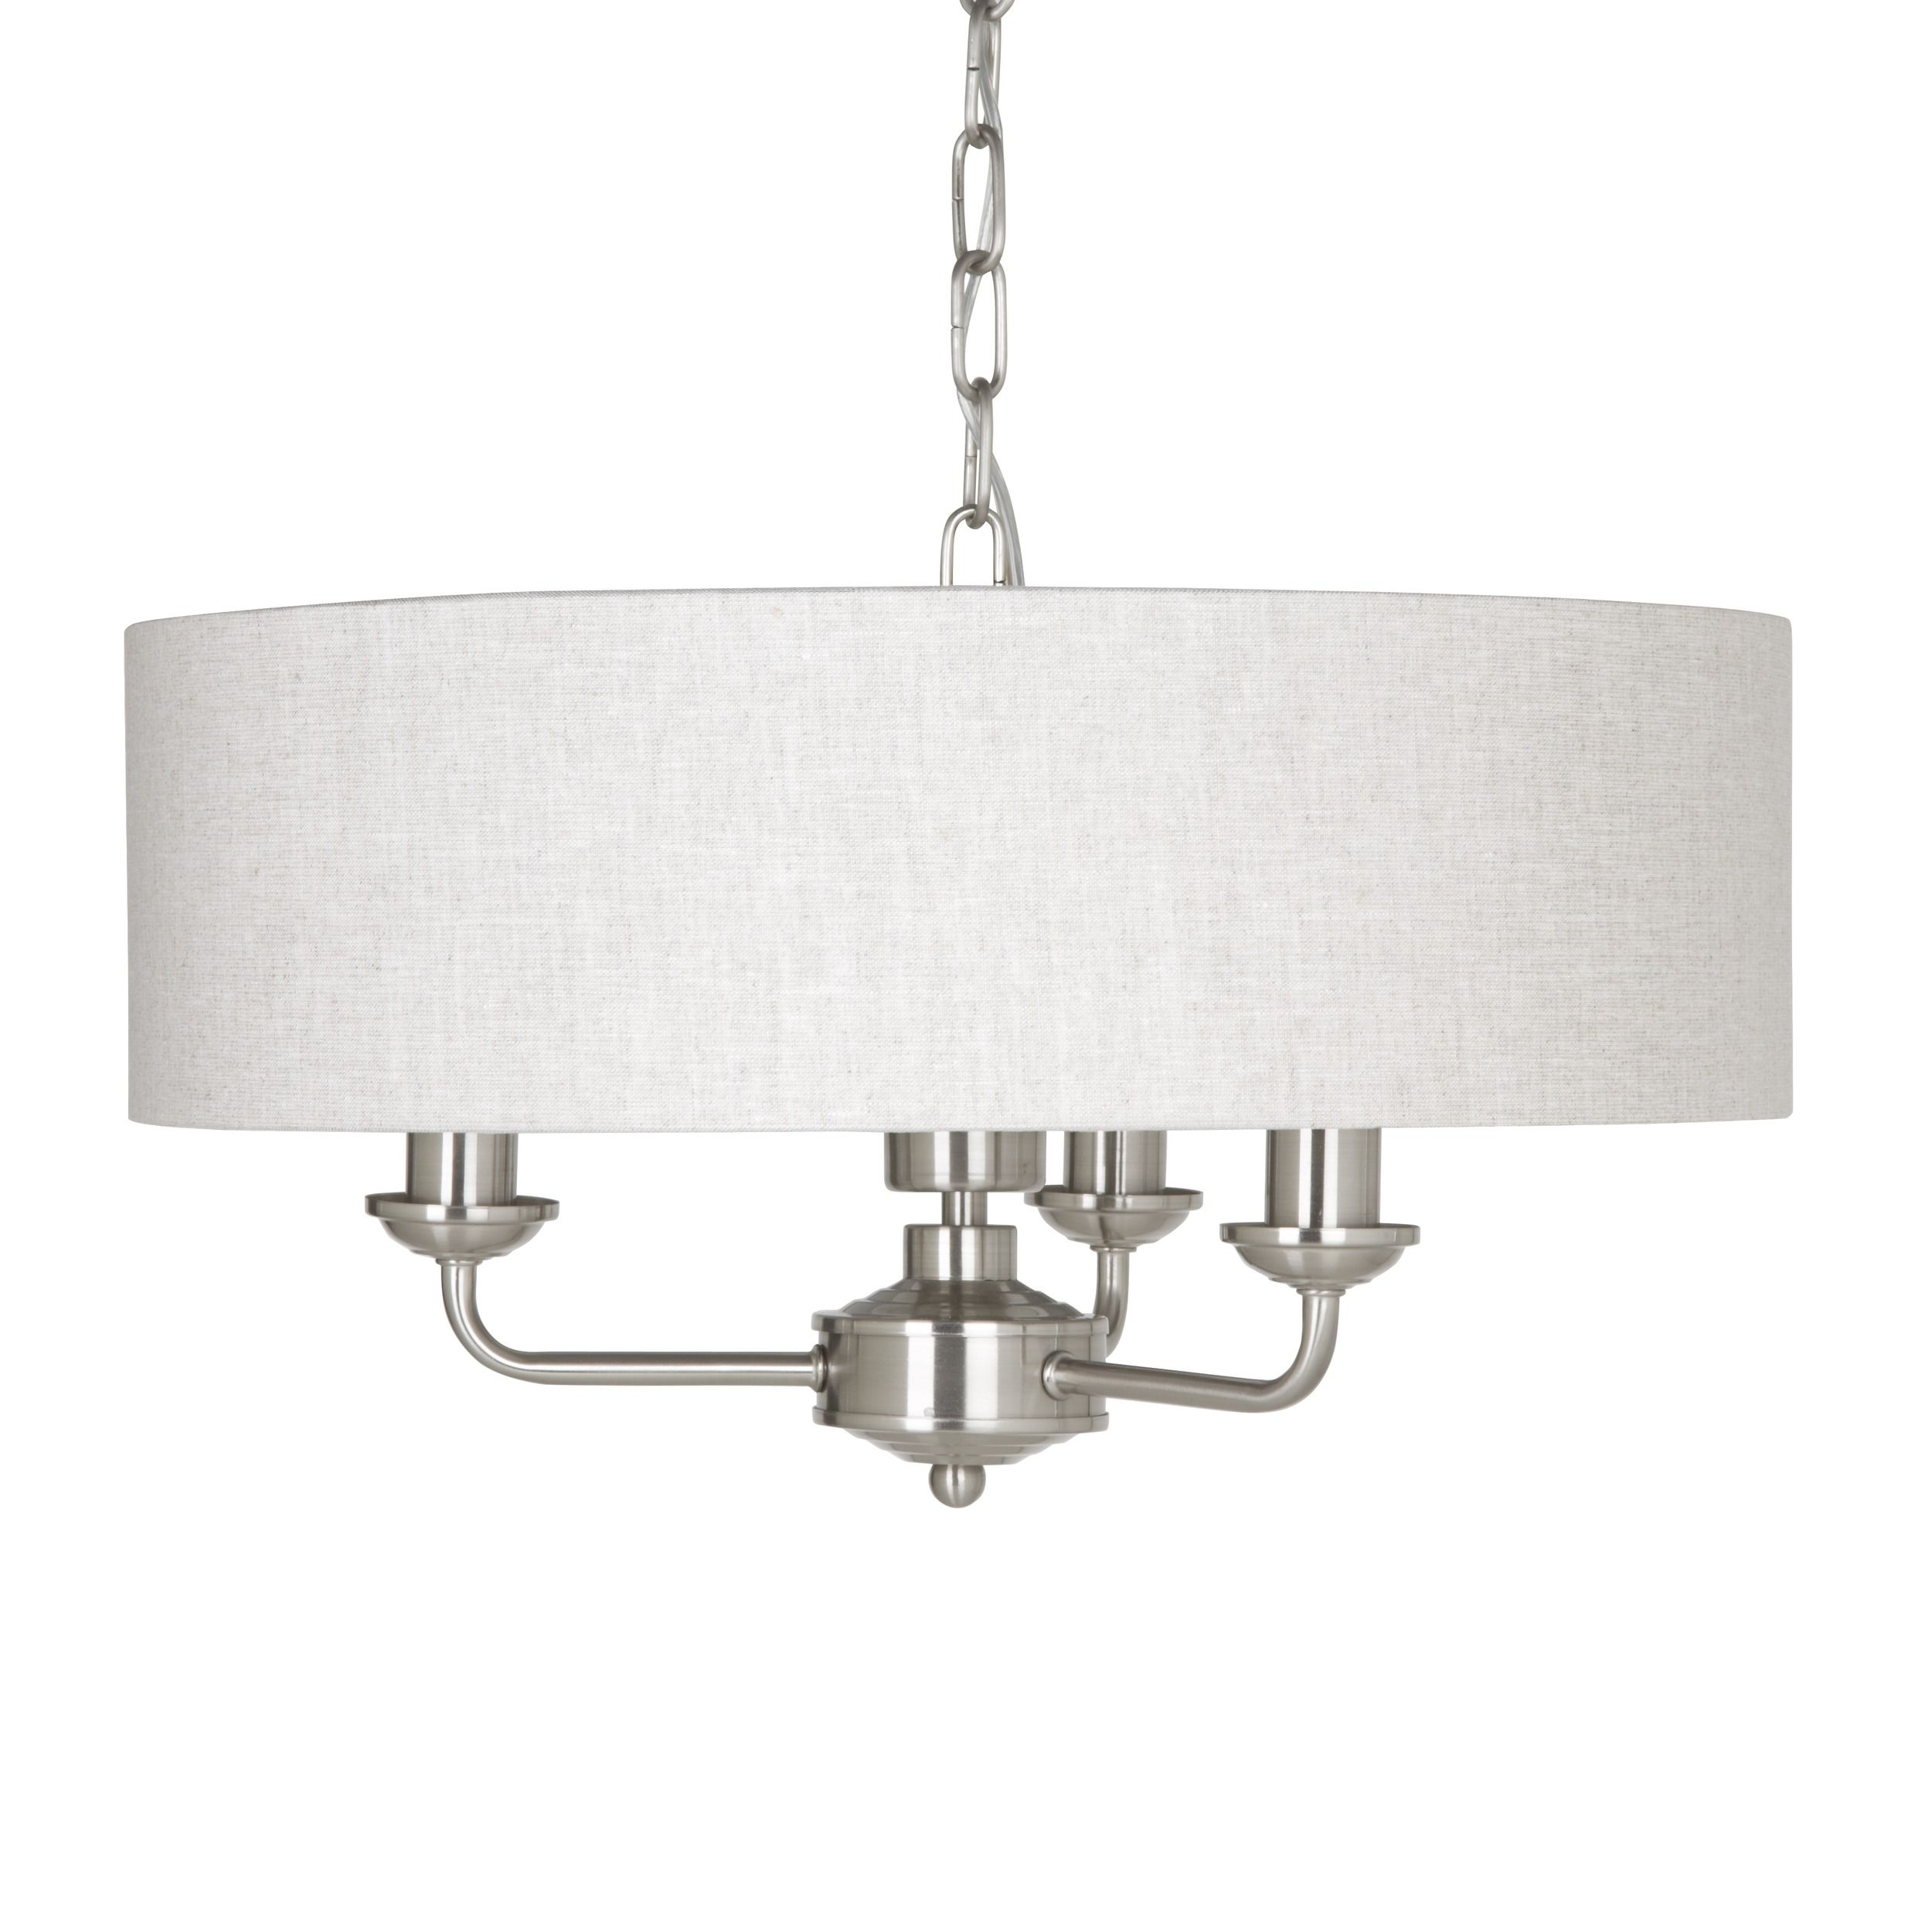 Sorrento 3 Arm Ceiling Pendant at LAURA ASHLEY Was  160  now  112Sorrento 3 Arm Ceiling Pendant at LAURA ASHLEY Was  160  now  112  . Ashley Lighting. Home Design Ideas